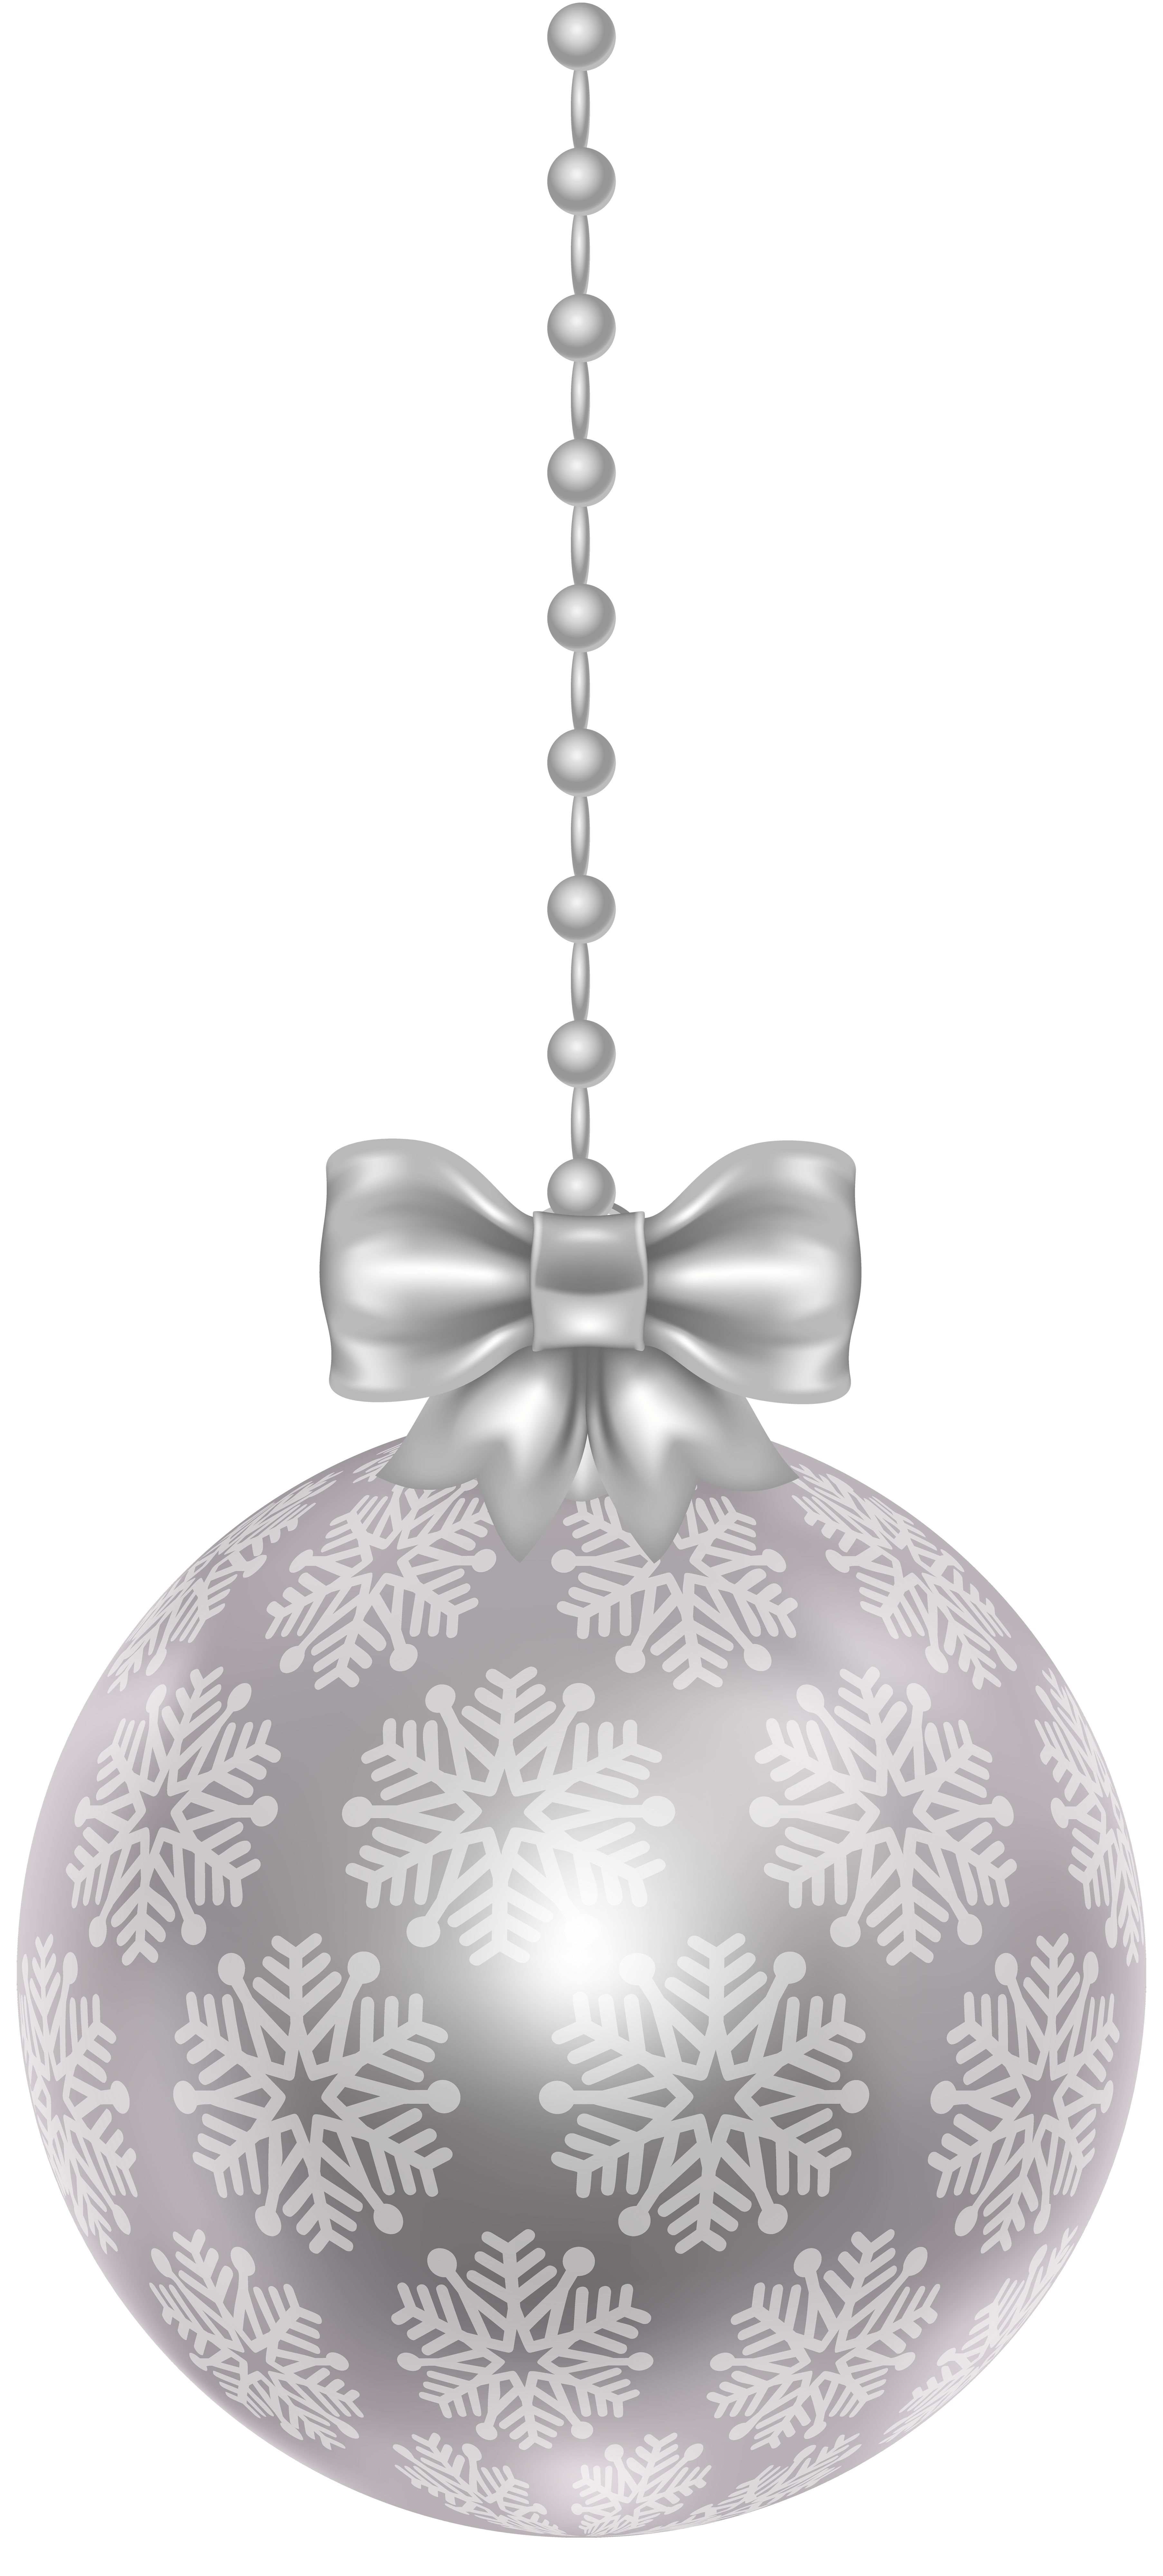 Silver christmas ornaments png. Ball transparent clip art